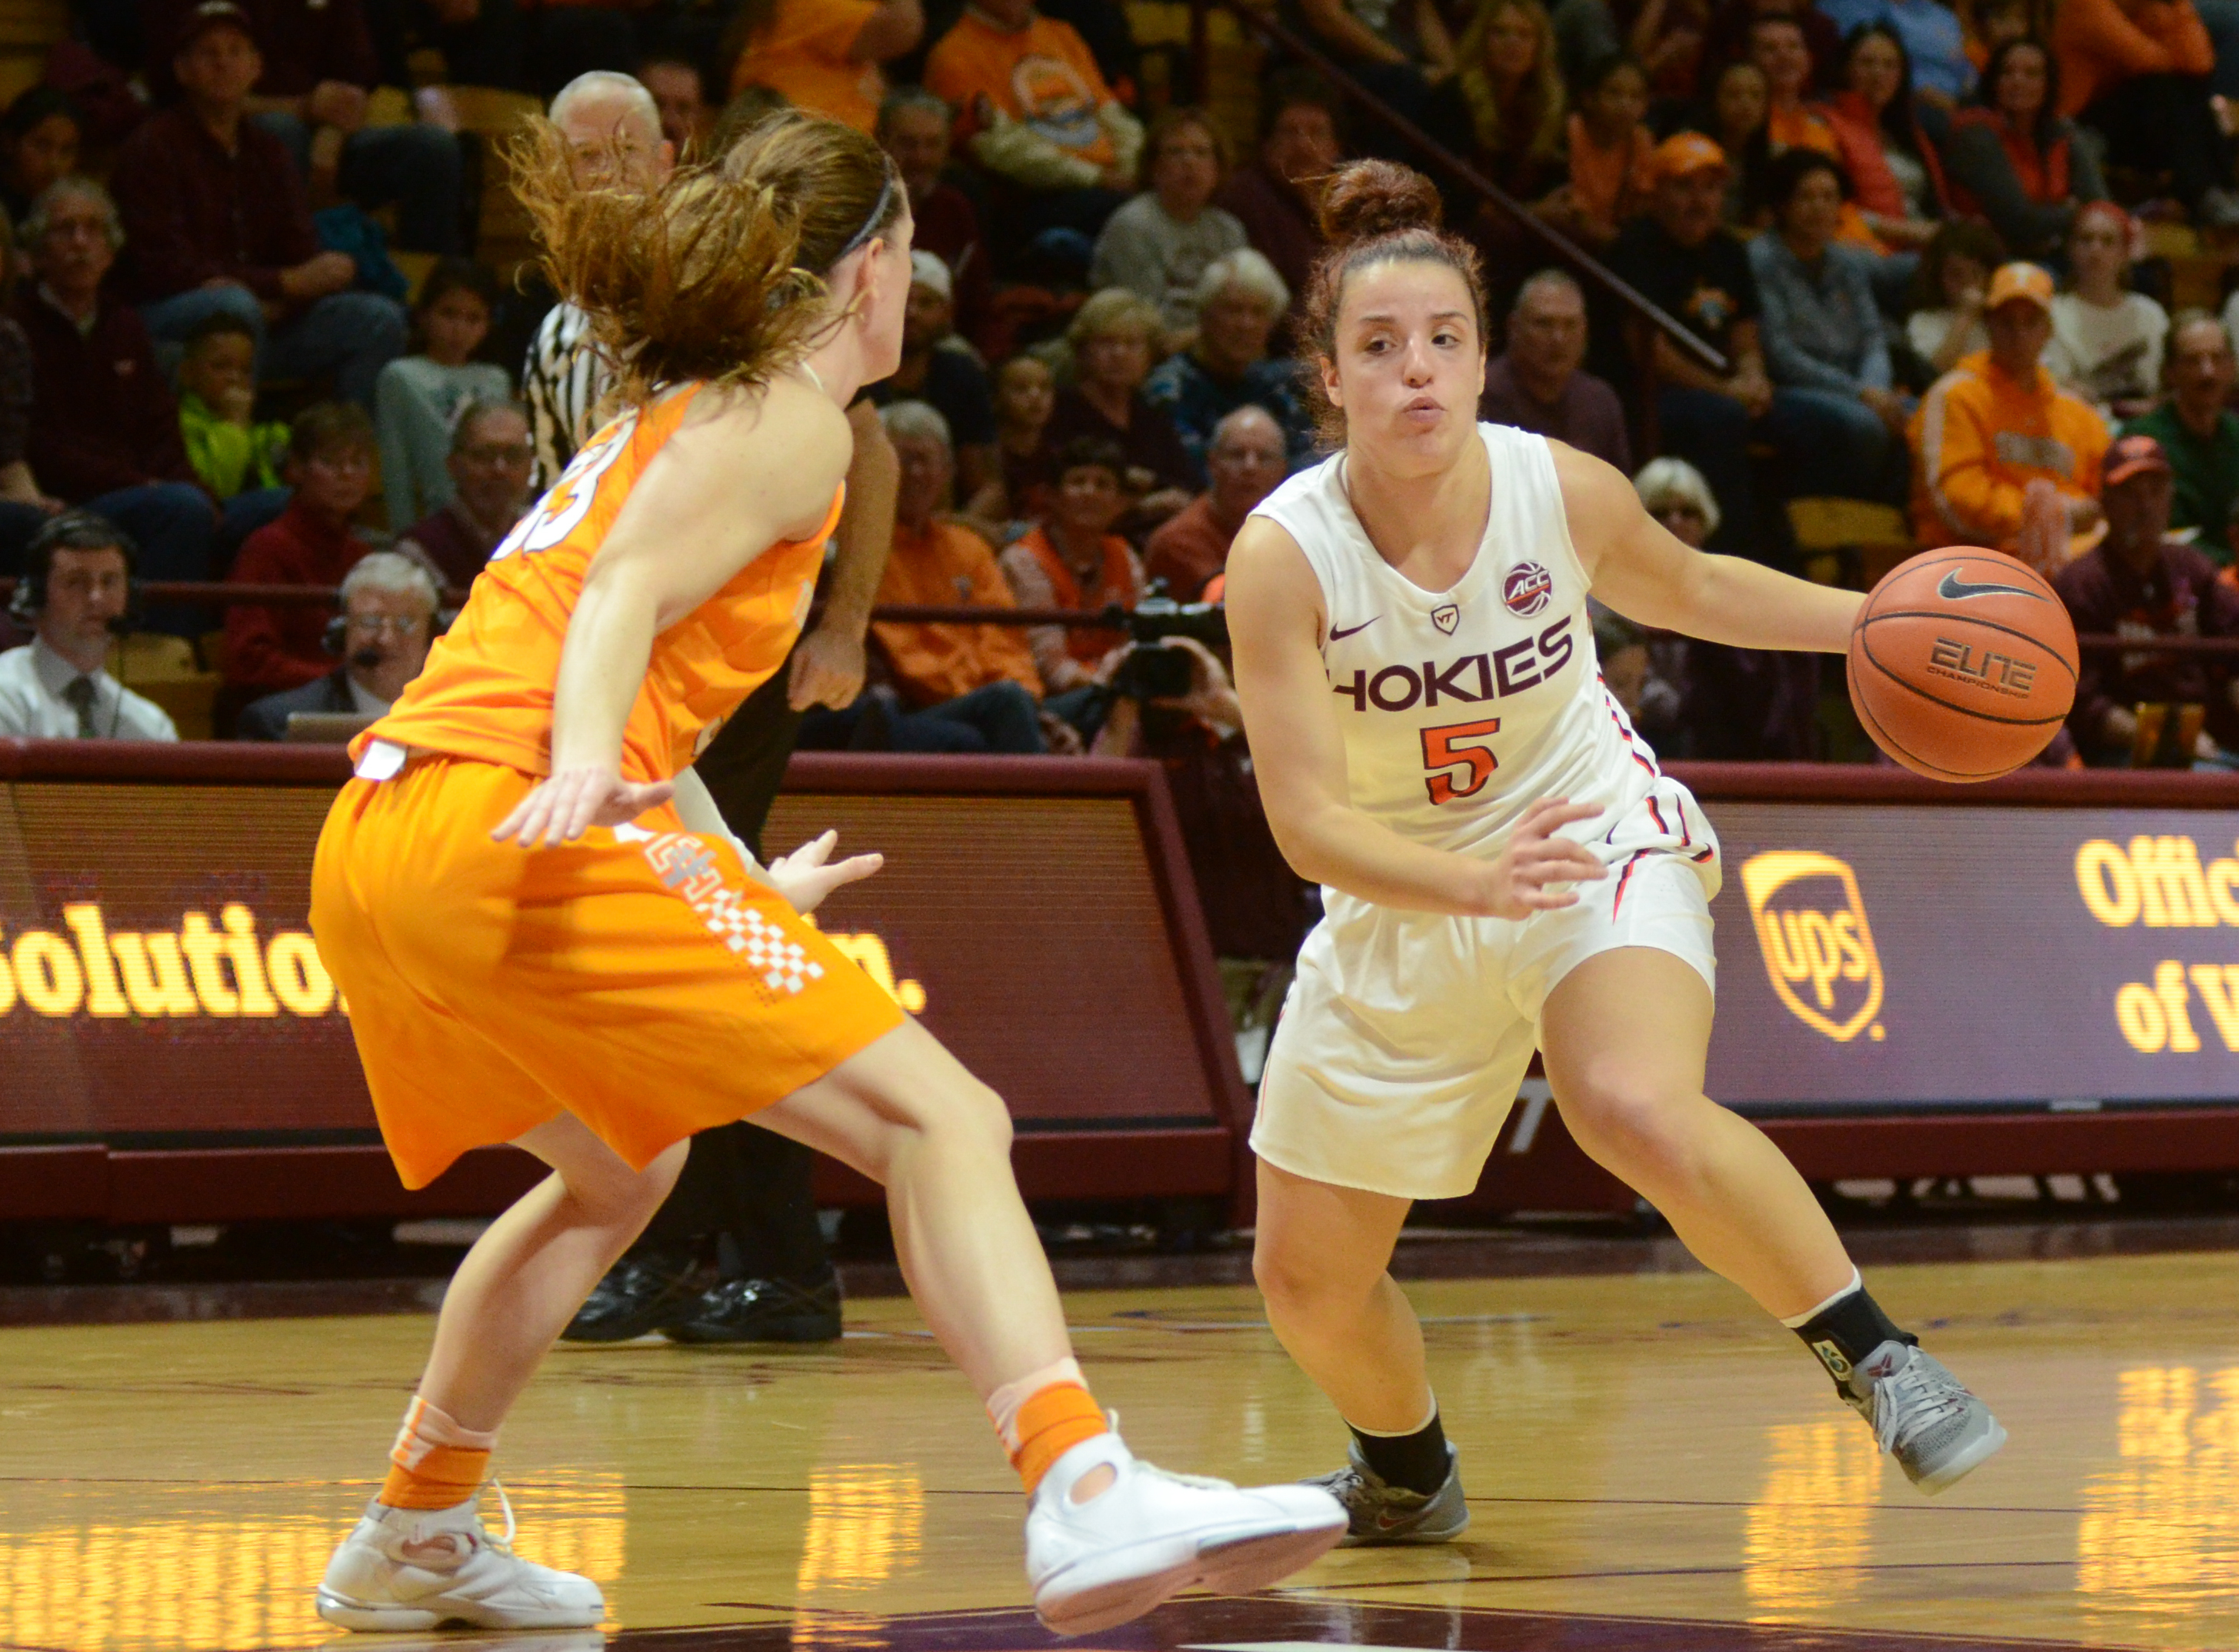 Virginia Tech women's basketball Vanessa Panousis